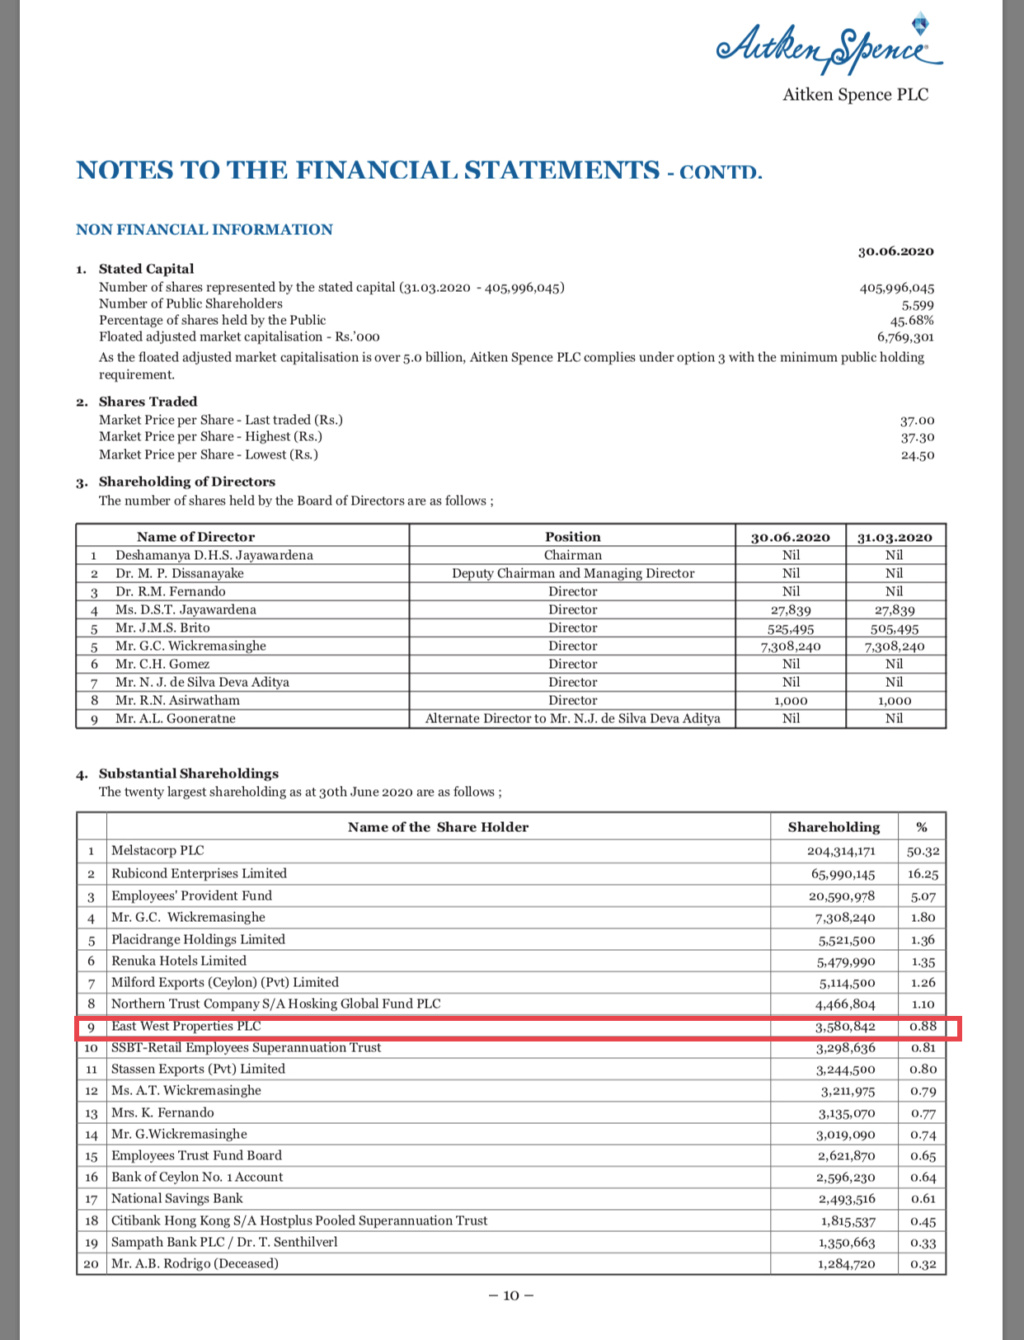 EAST WEST PROPERTIES PLC (EAST.N0000) - Page 13 14085e10